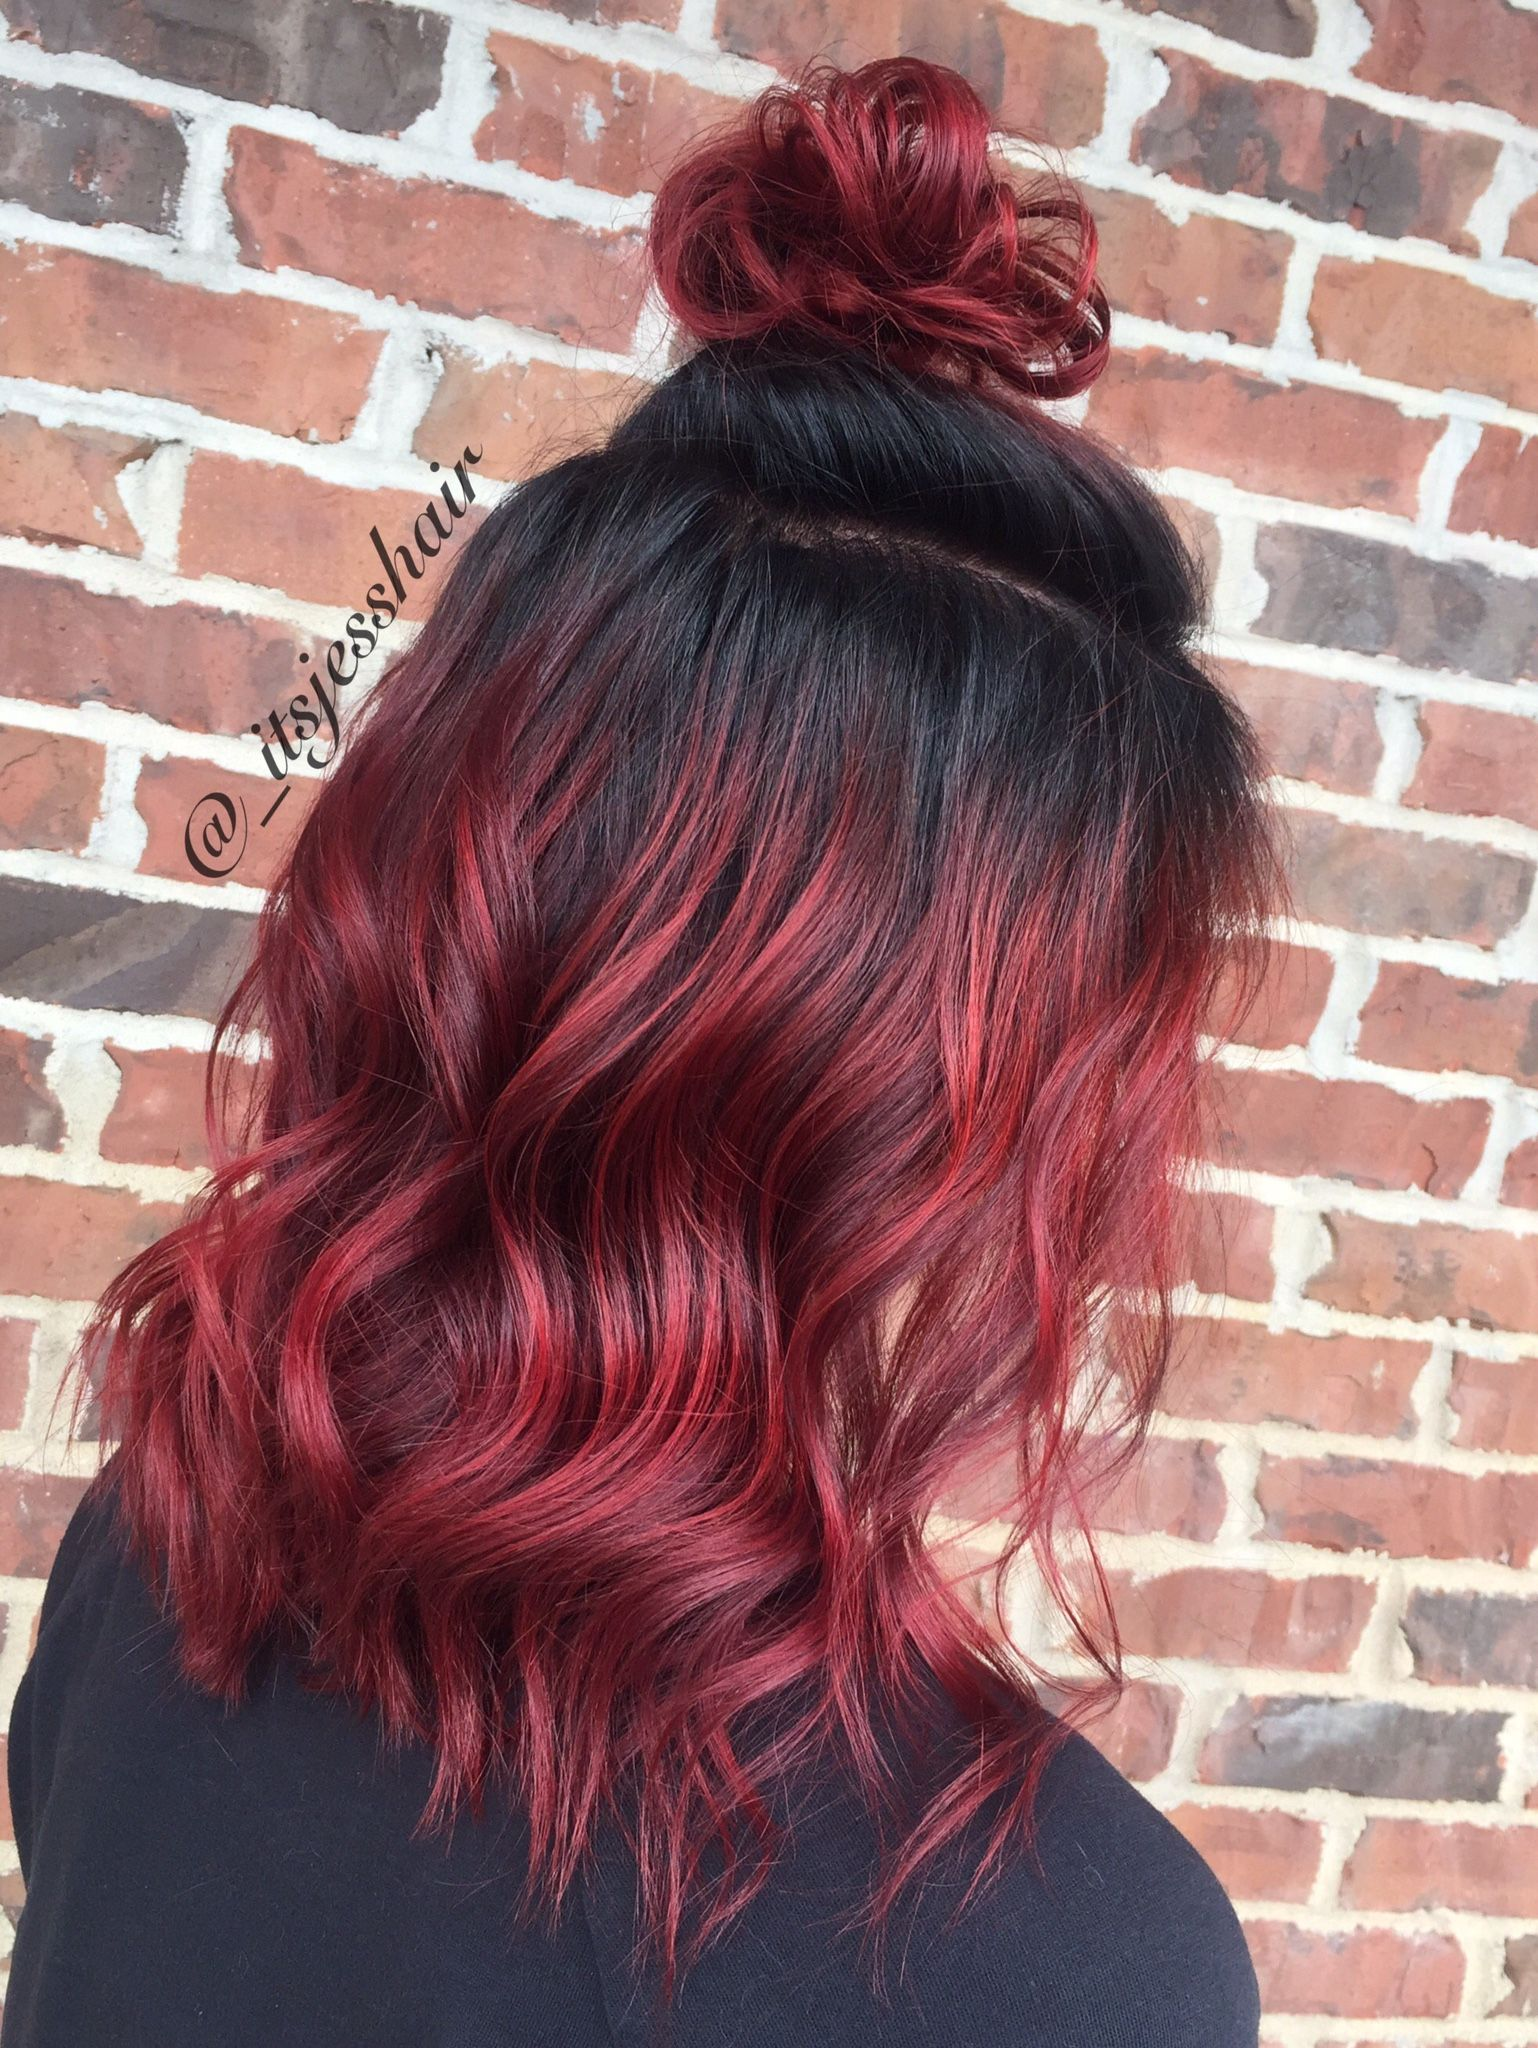 Bayalage Redbayalage Shadowroot Hairstyle Red Bayalage Shadow Root Red Ombre Hairstyle Red Ombre Hair Brown Ombre Hair Hair Styles